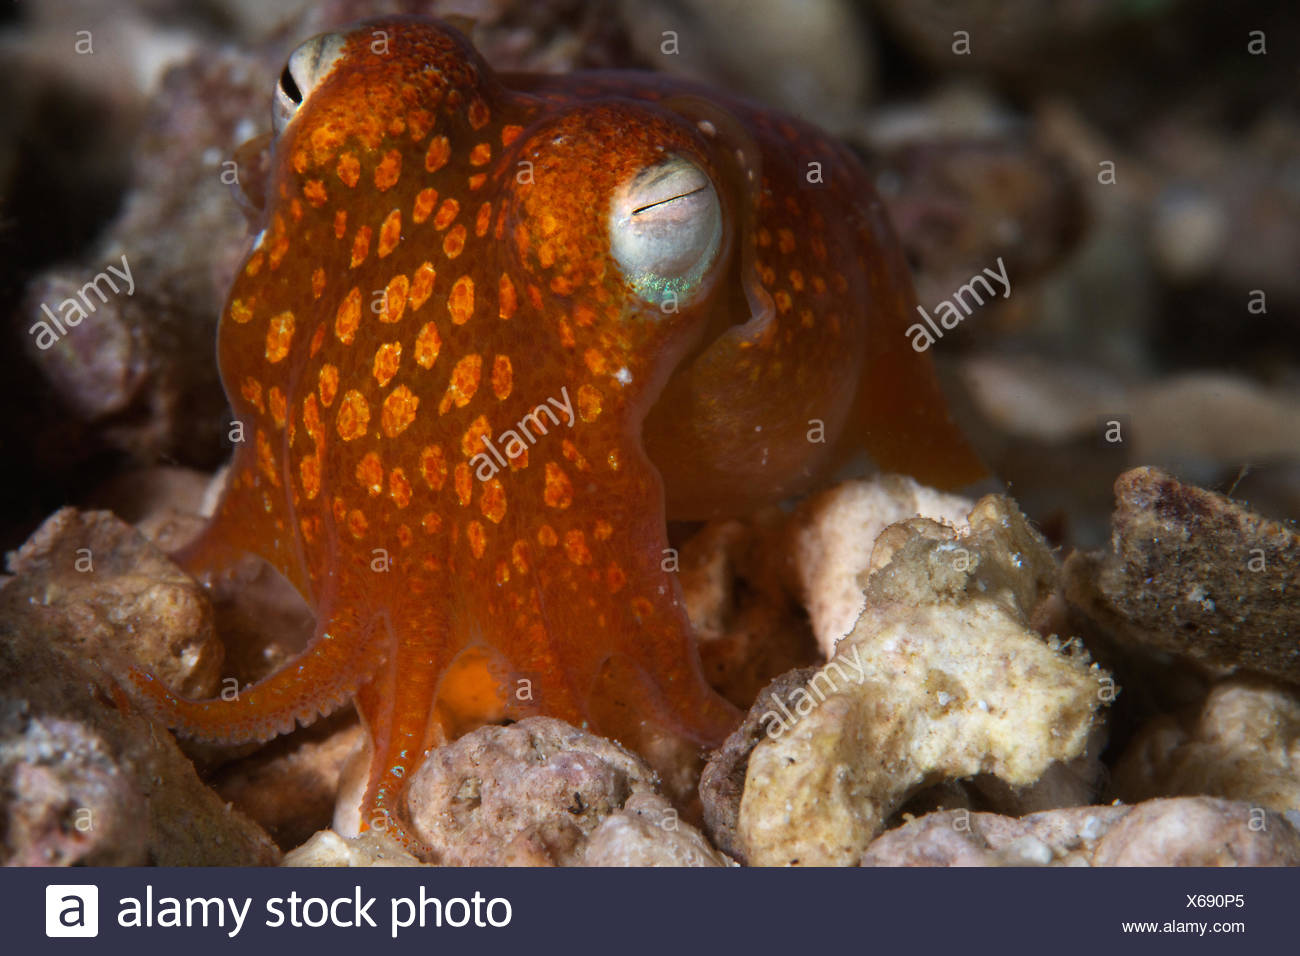 Close up of a bobtail squid. - Stock Image